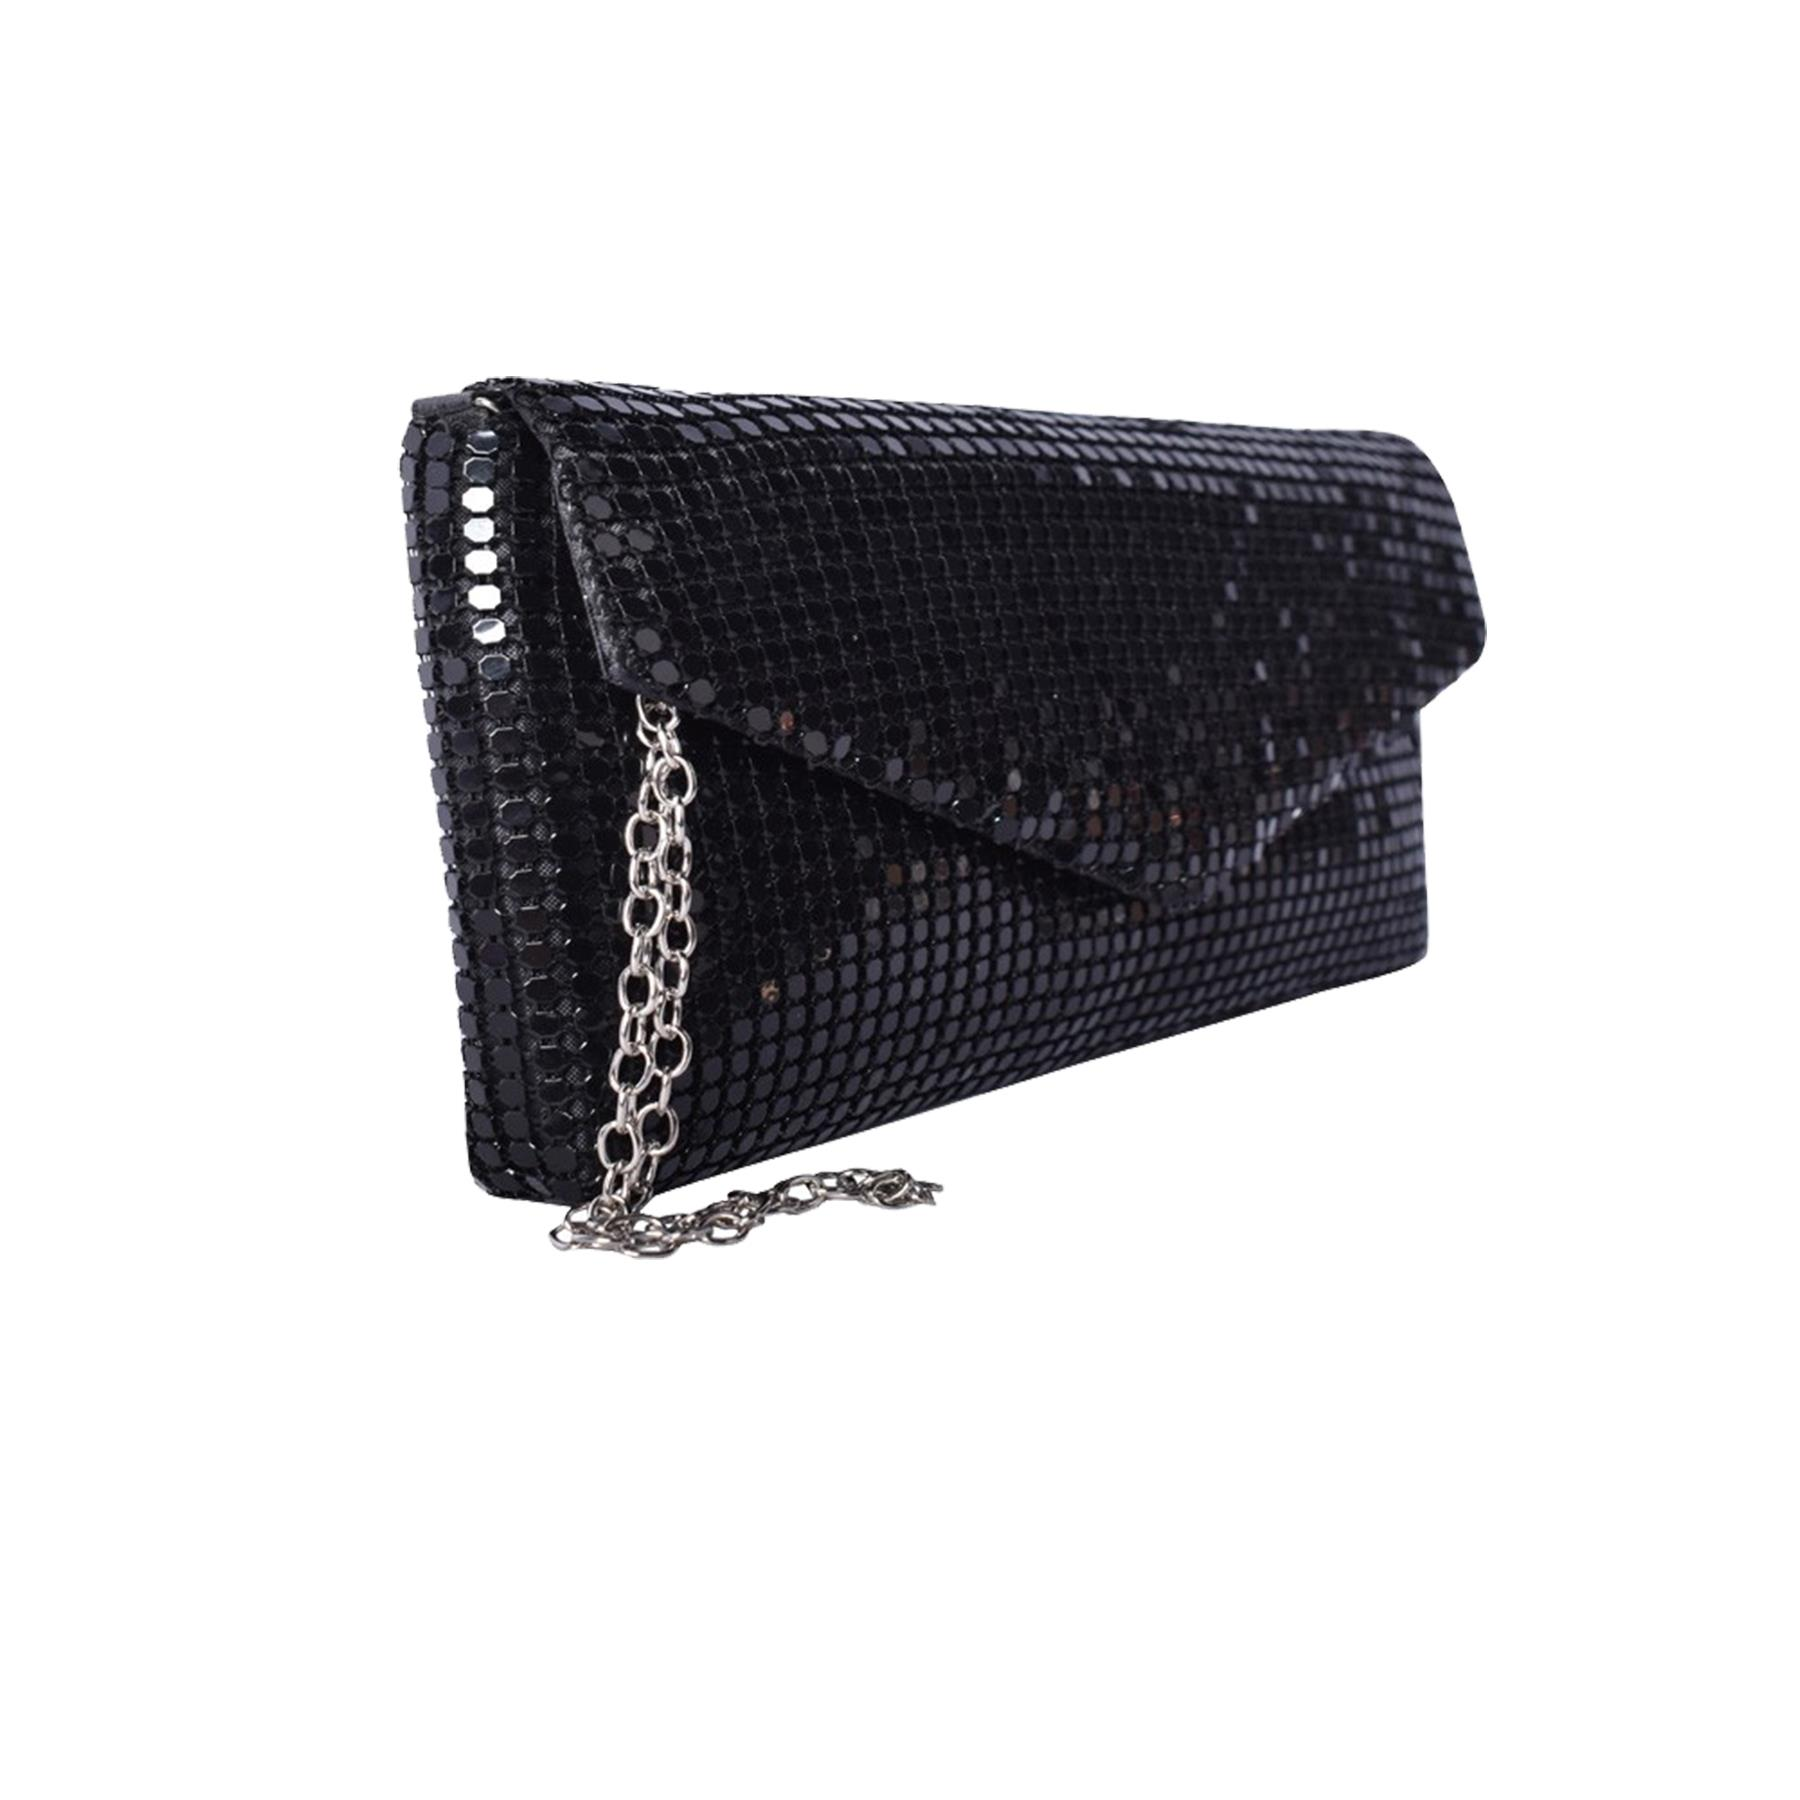 New-Ladies-Chainmail-Faux-Leather-Chain-Strap-Wedding-Clutch-Bag-Pouch thumbnail 18